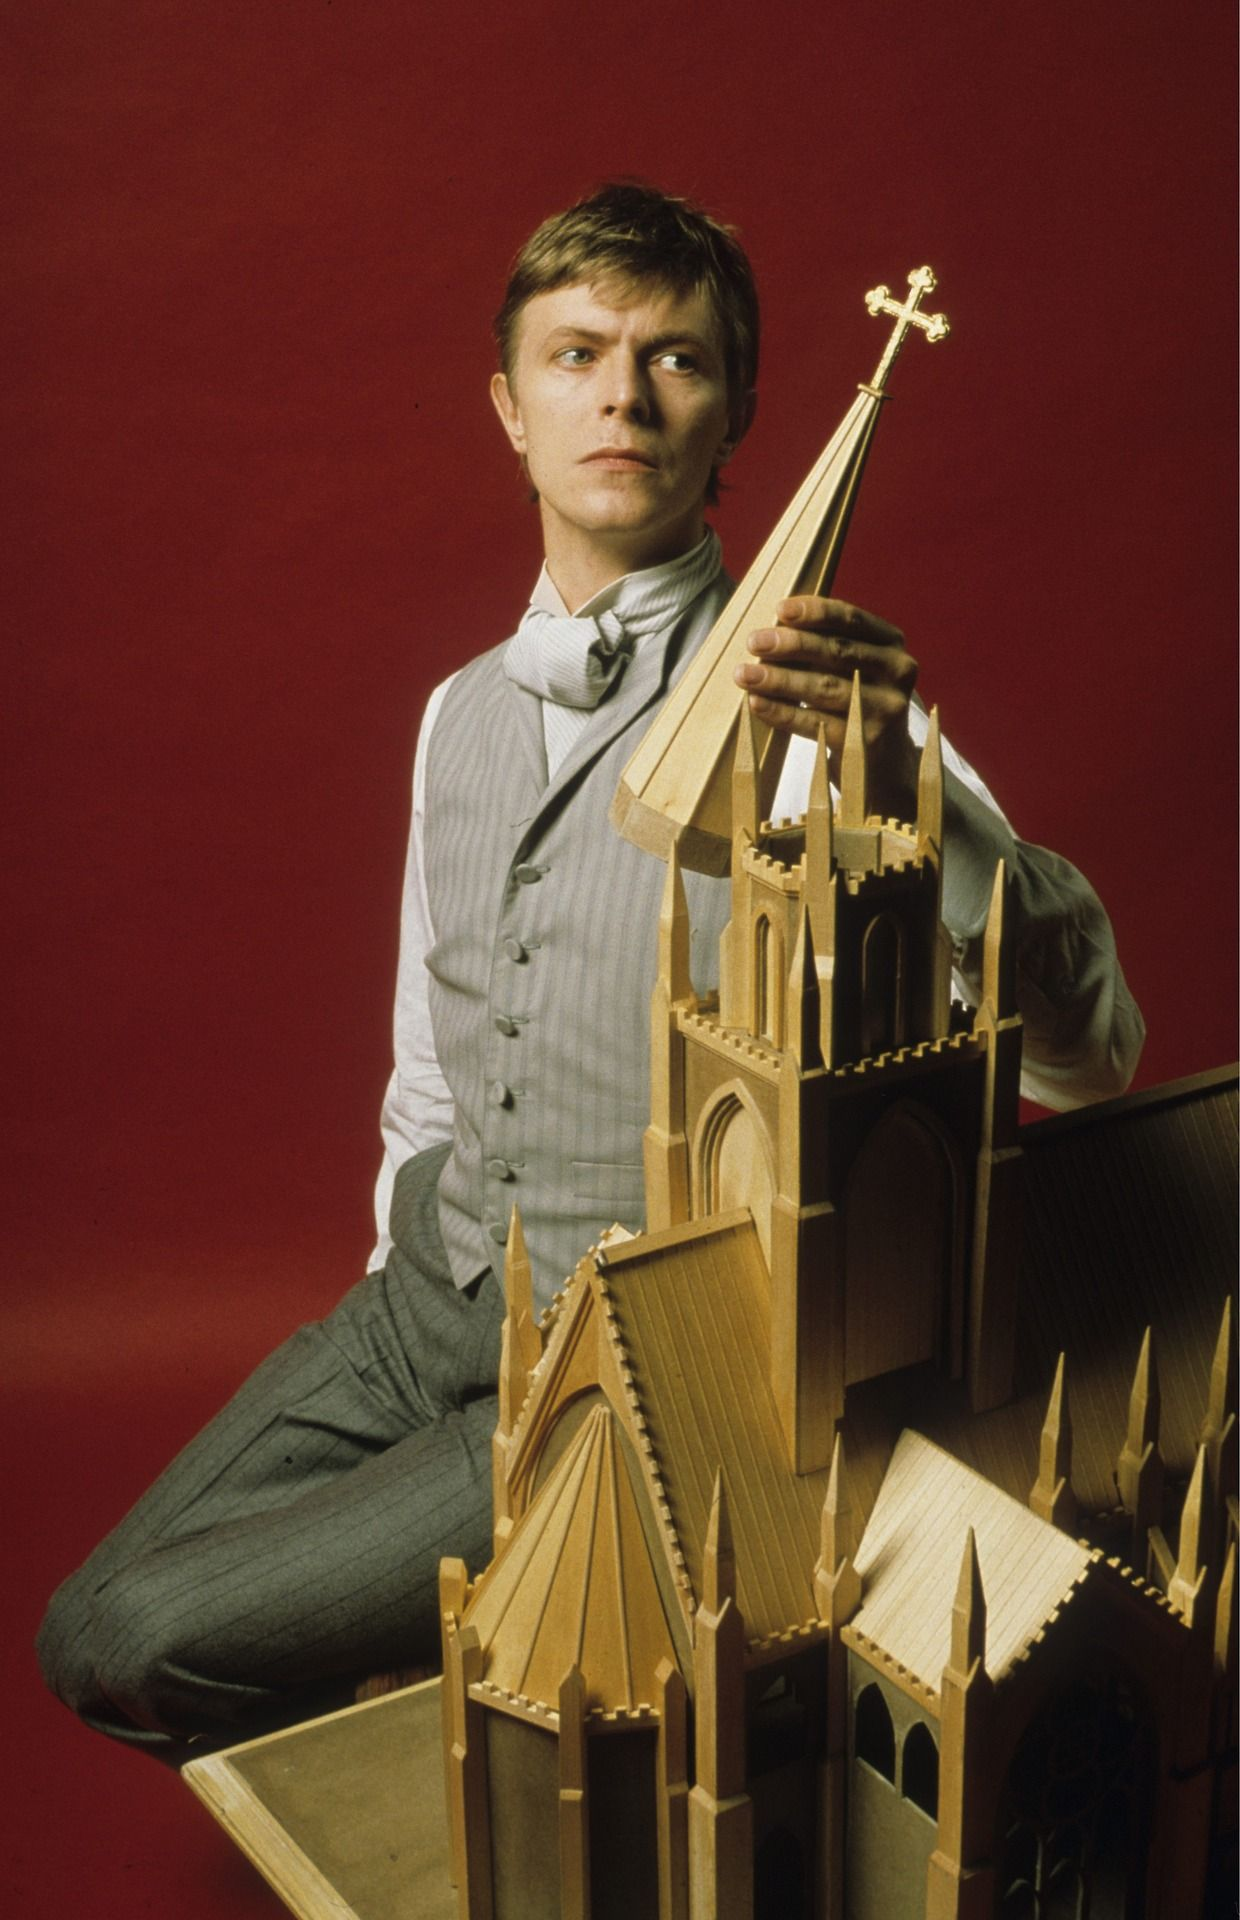 """David Bowie as John Merrick , in the play """"The Elephant Man"""" by Bernard Pomerance, directed by Jack Hofsiss in Broadway, photo by Ron Scherl, 1980"""